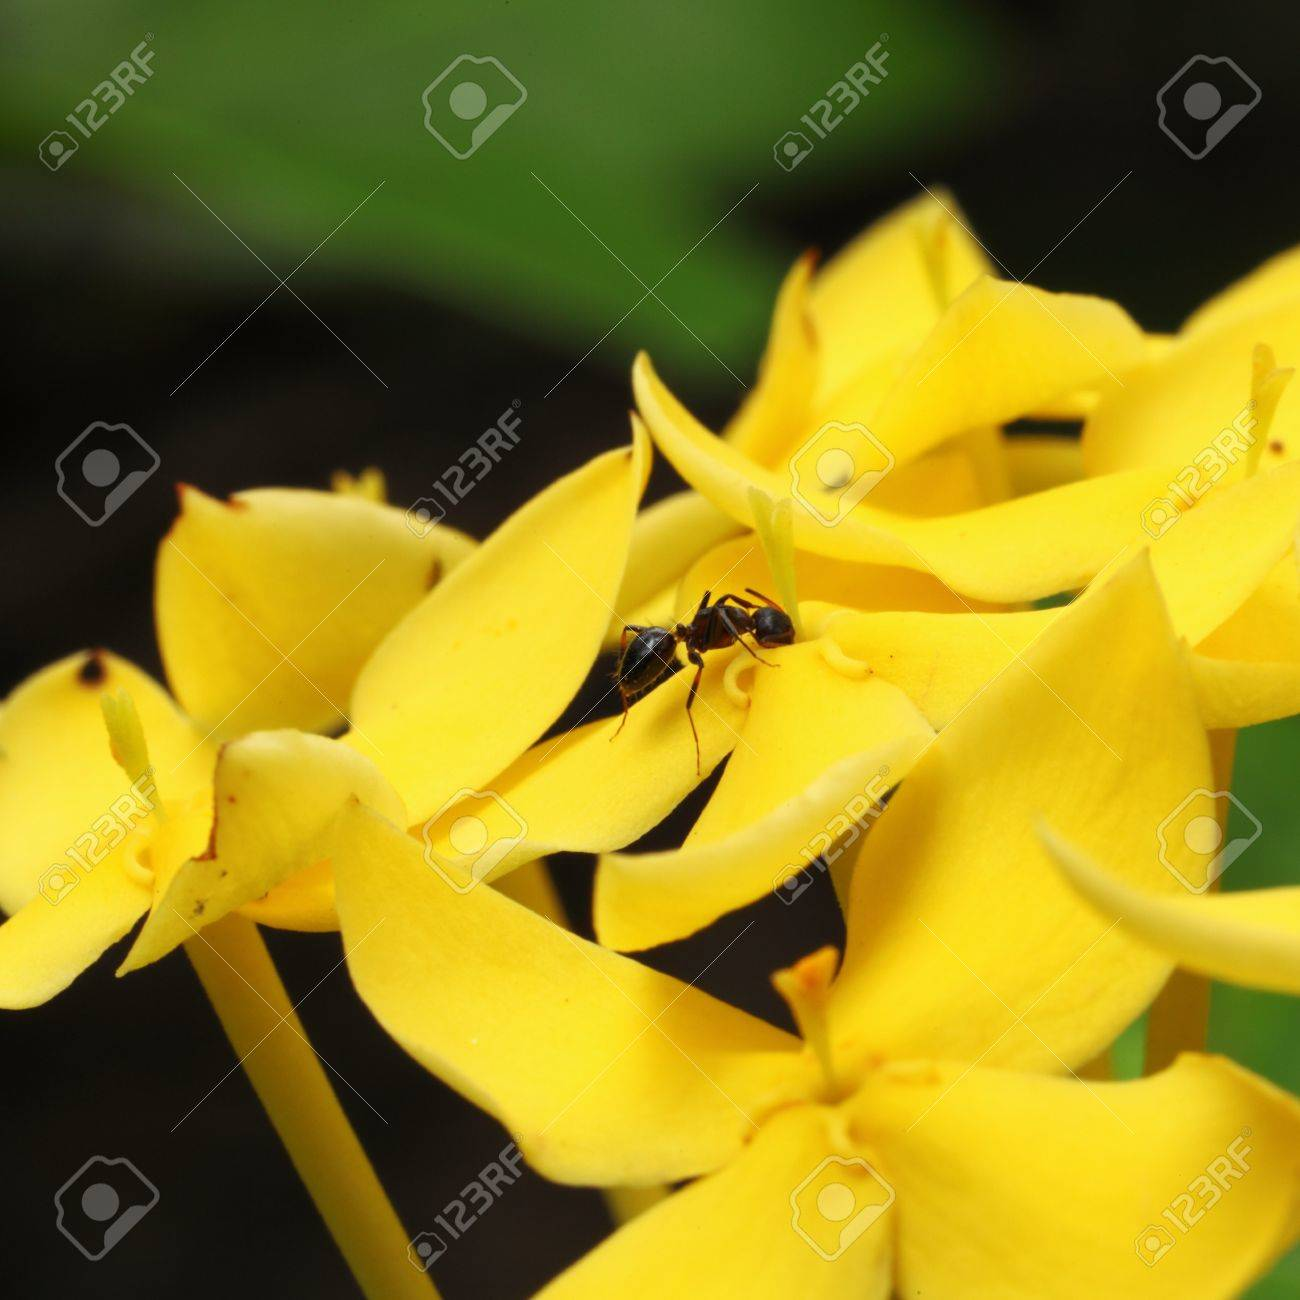 Ants on pollen yellow flowers west indian jasmine scientific stock ants on pollen yellow flowers west indian jasmine scientific name ixora chinensis lamk stock photo mightylinksfo